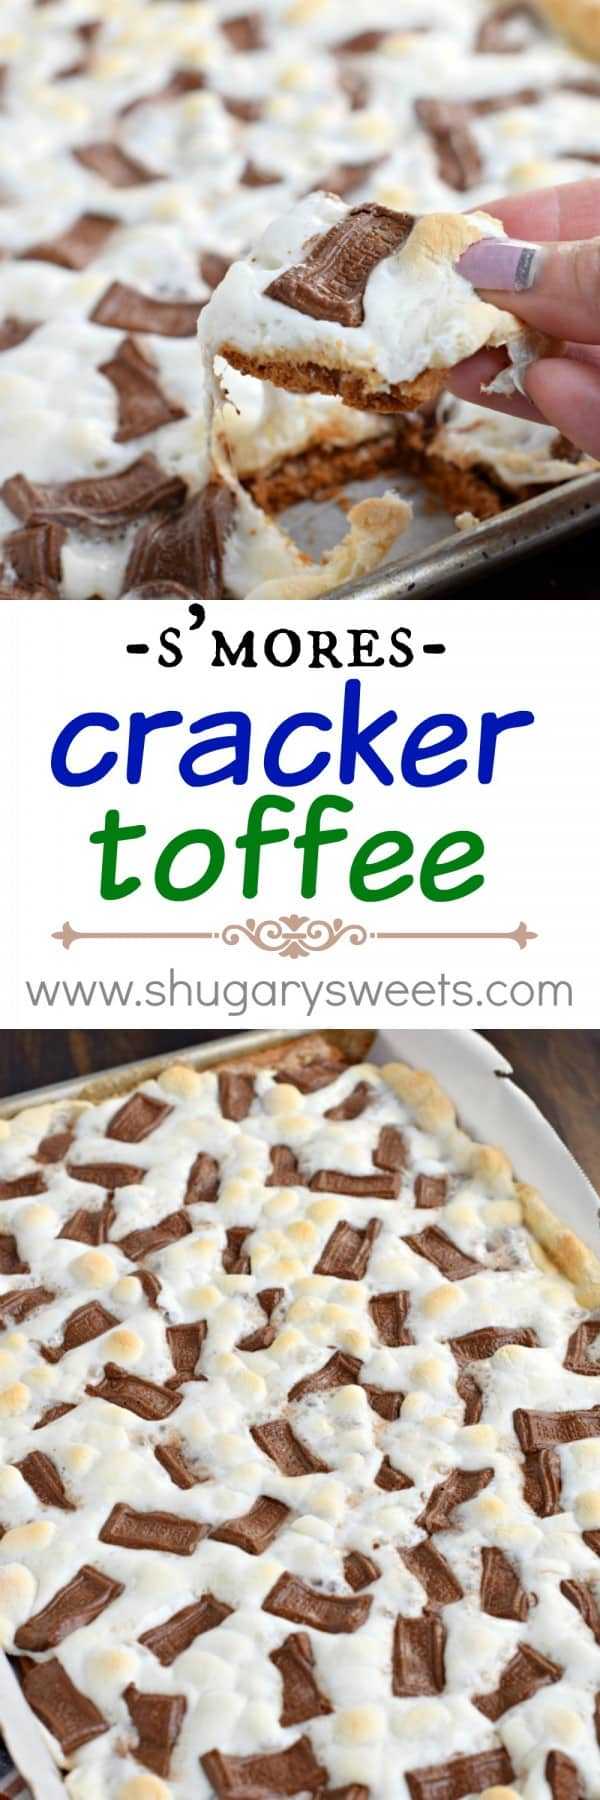 This S'mores Cracker toffee recipe has a graham cracker toffee base topped with gooey marshmallows and melted chocolate bars!